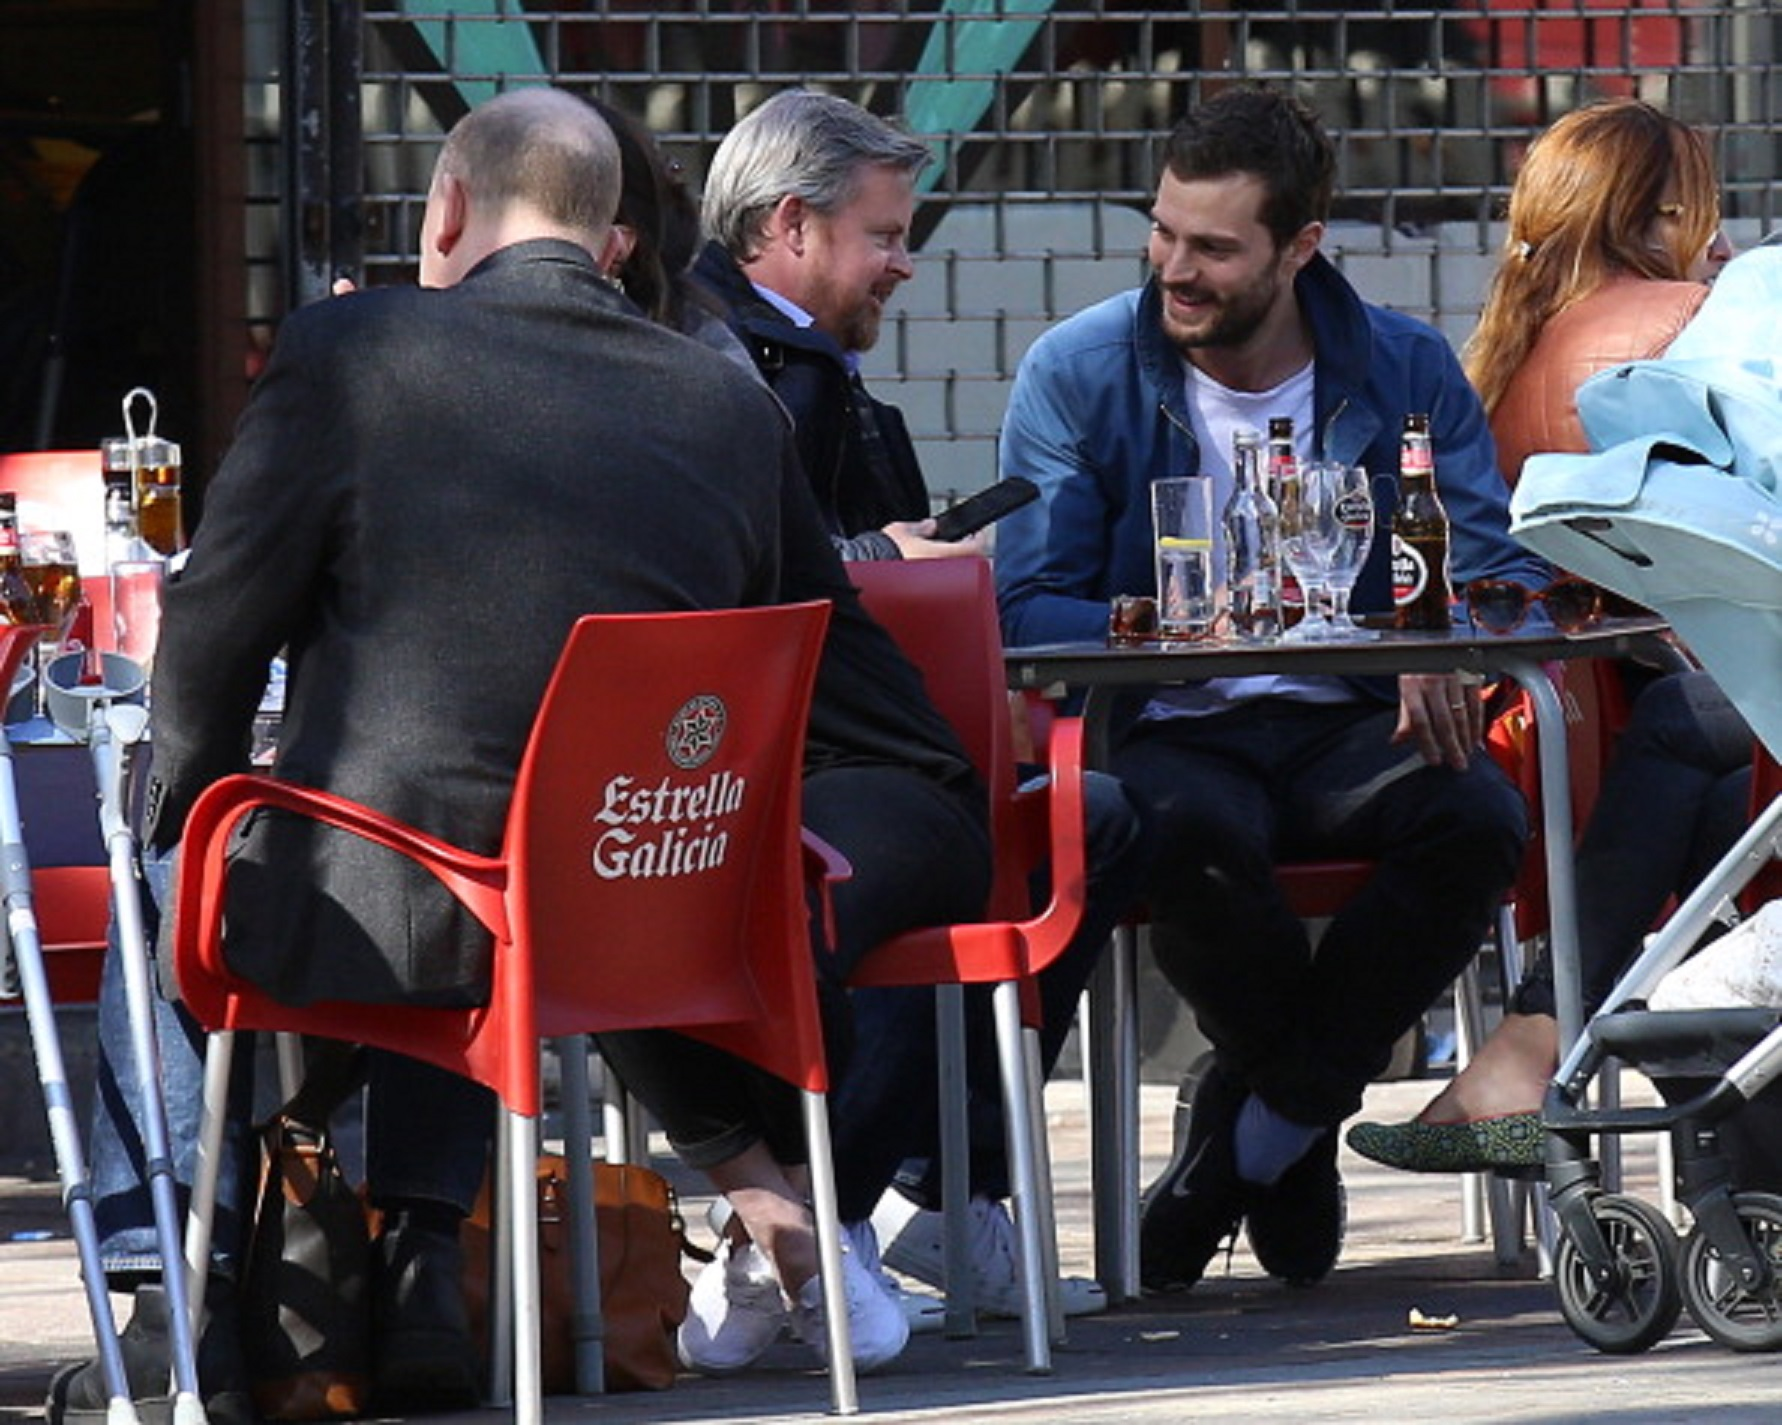 Jamie Dornan And Amelia Warner Sightings In London - April 15, 2014